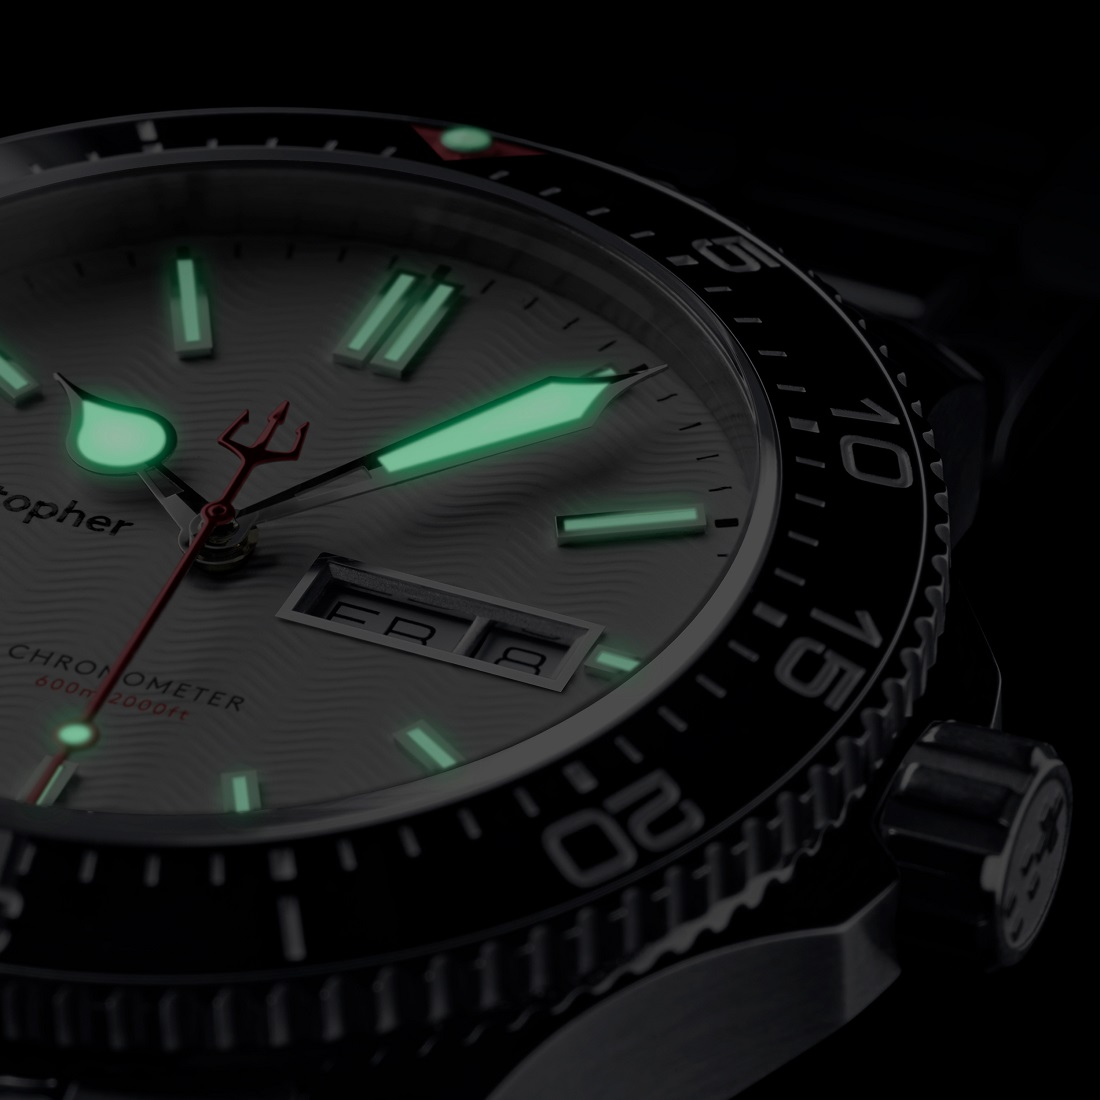 Christopher Ward Launches #TridentSummer & Two New C60 Trident Dive Watches Watch Releases